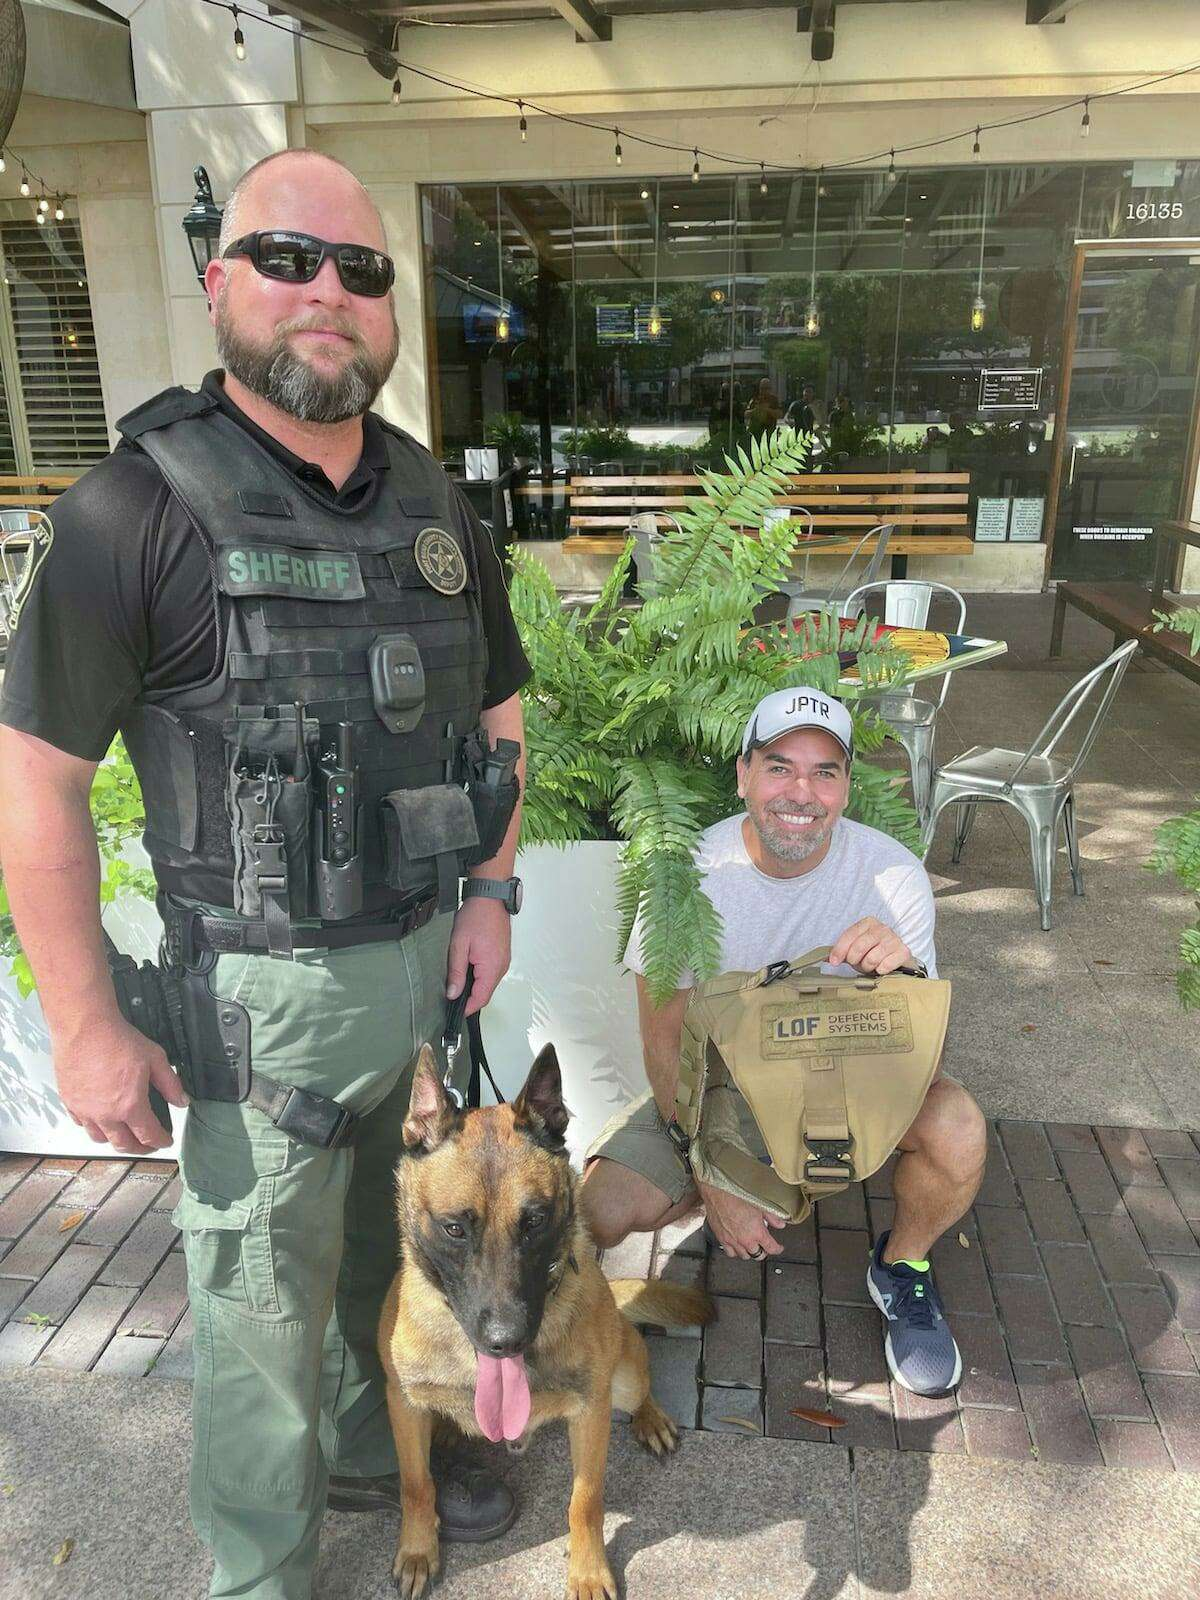 Fort Bend County Sheriff's Office K9 unit received armored vests from area business owners Robert White and Victor Litwinenko.